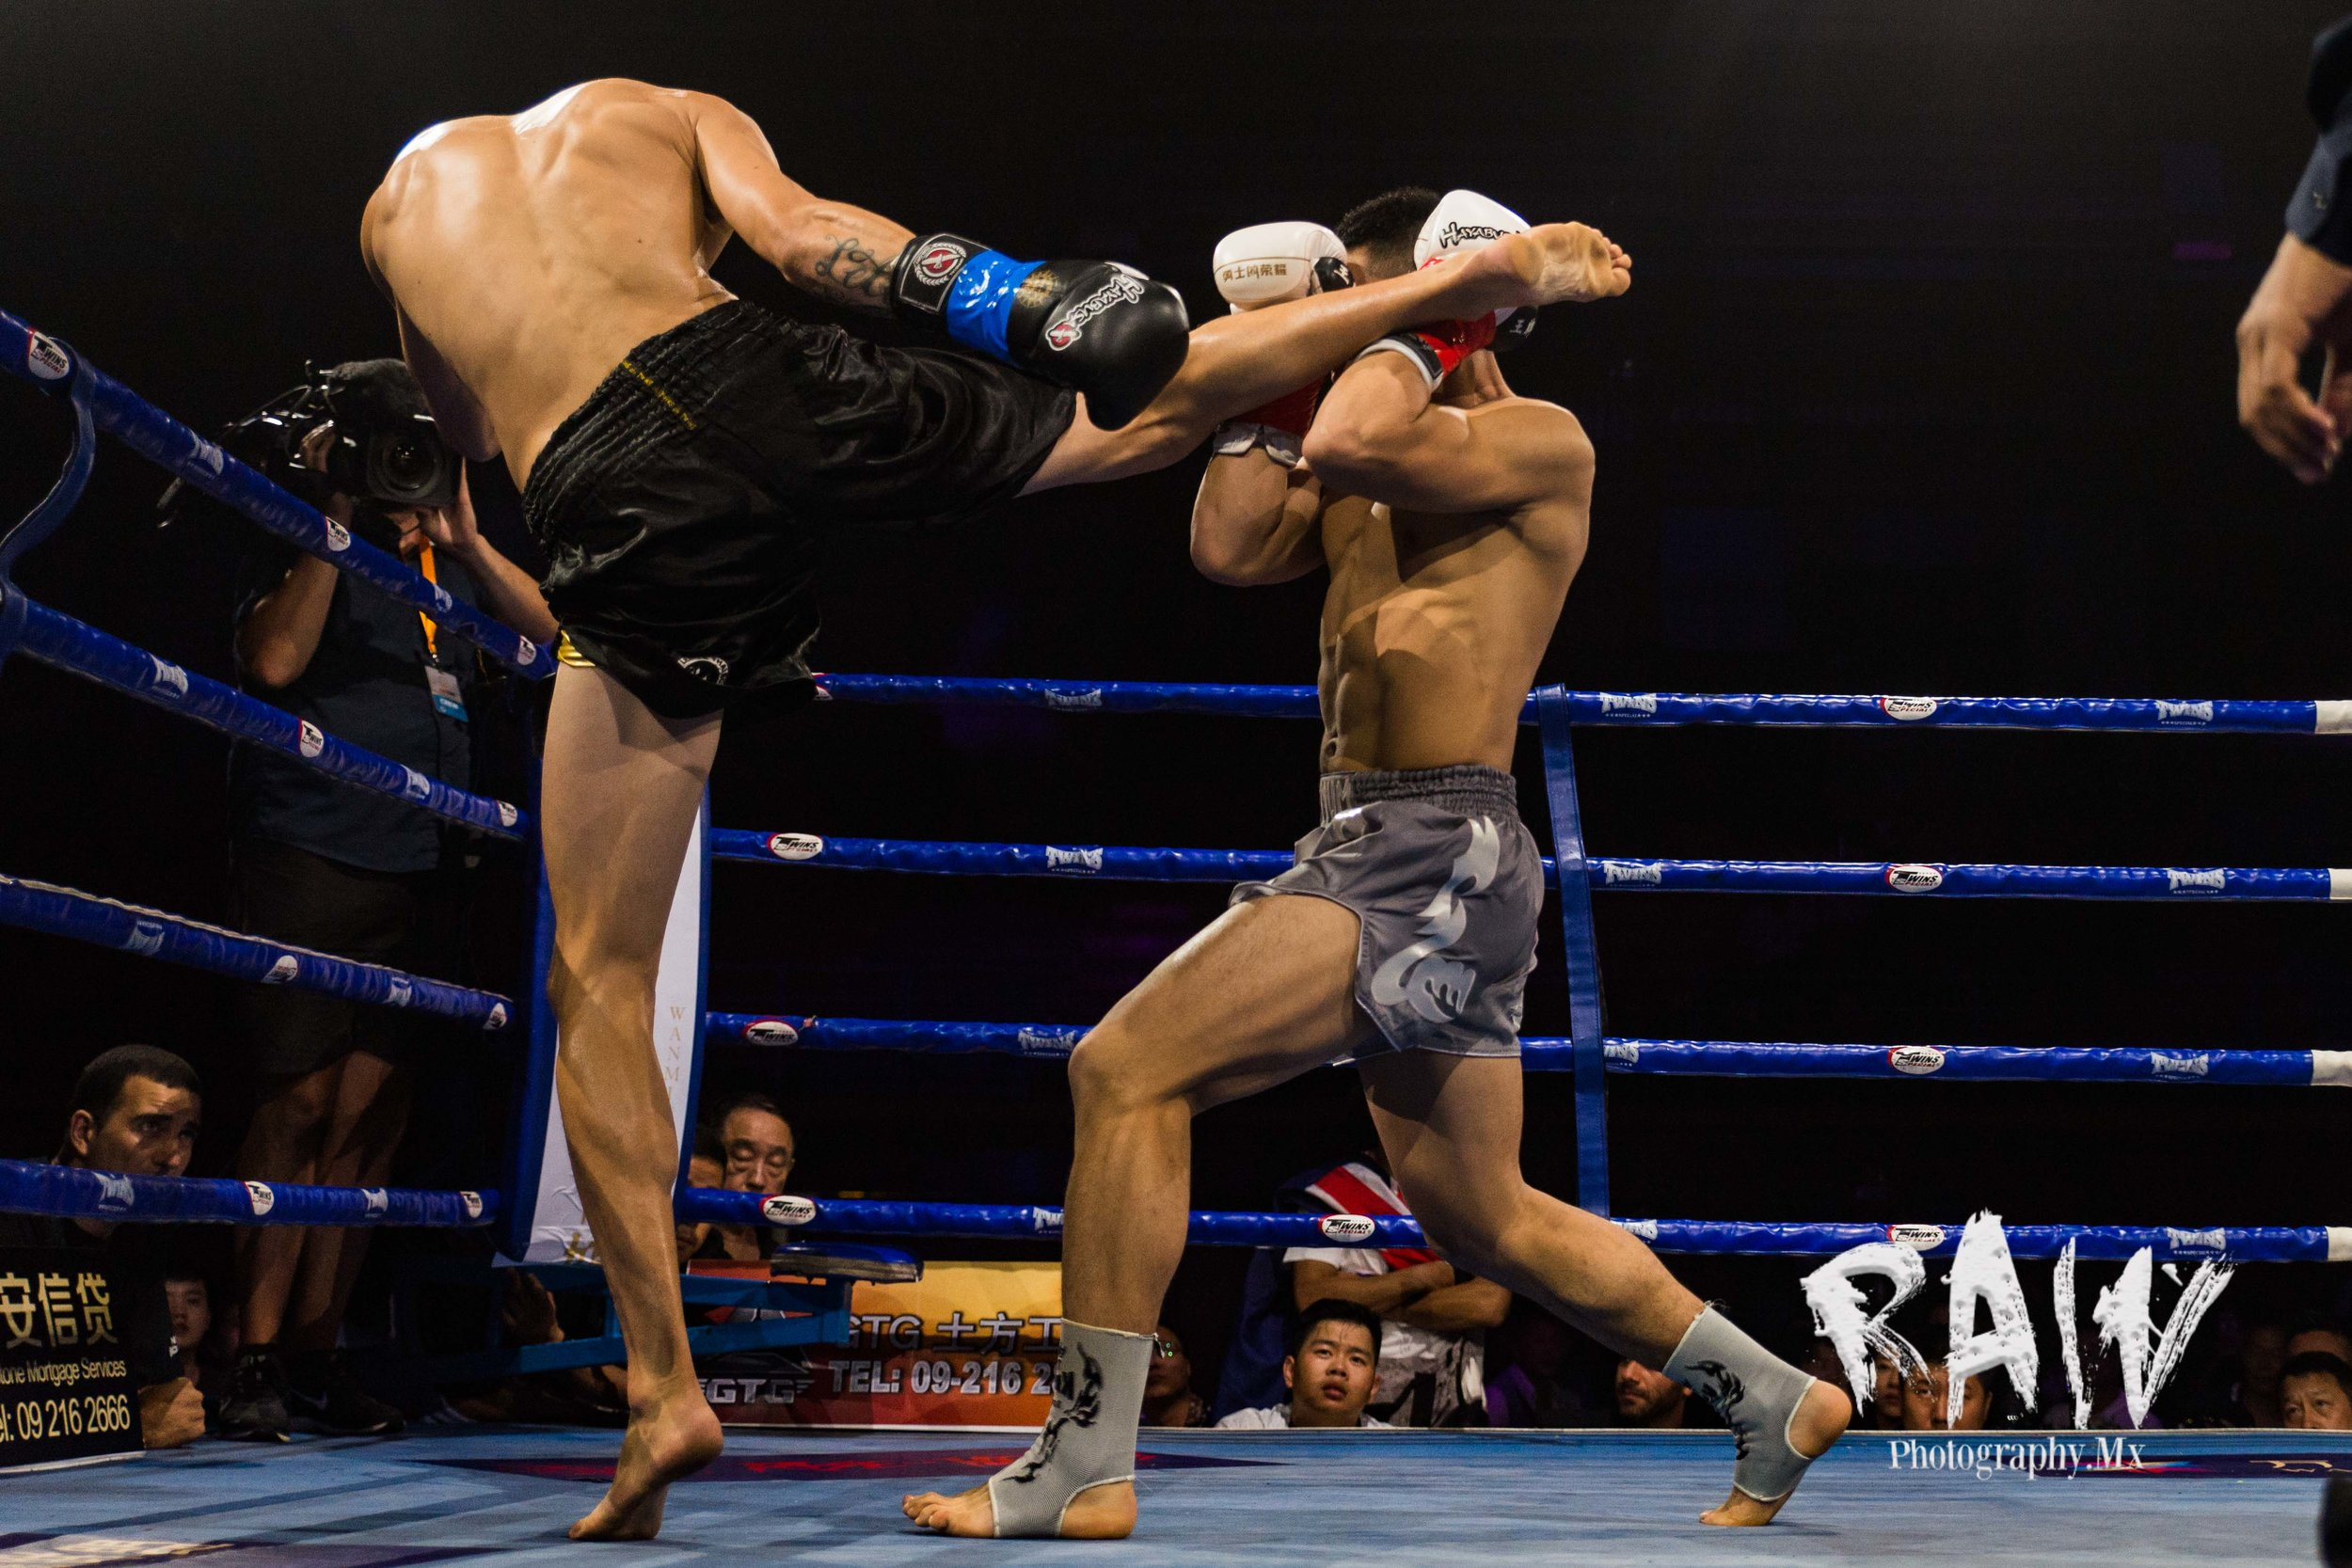 Fight Photography - New Zealand Fighter